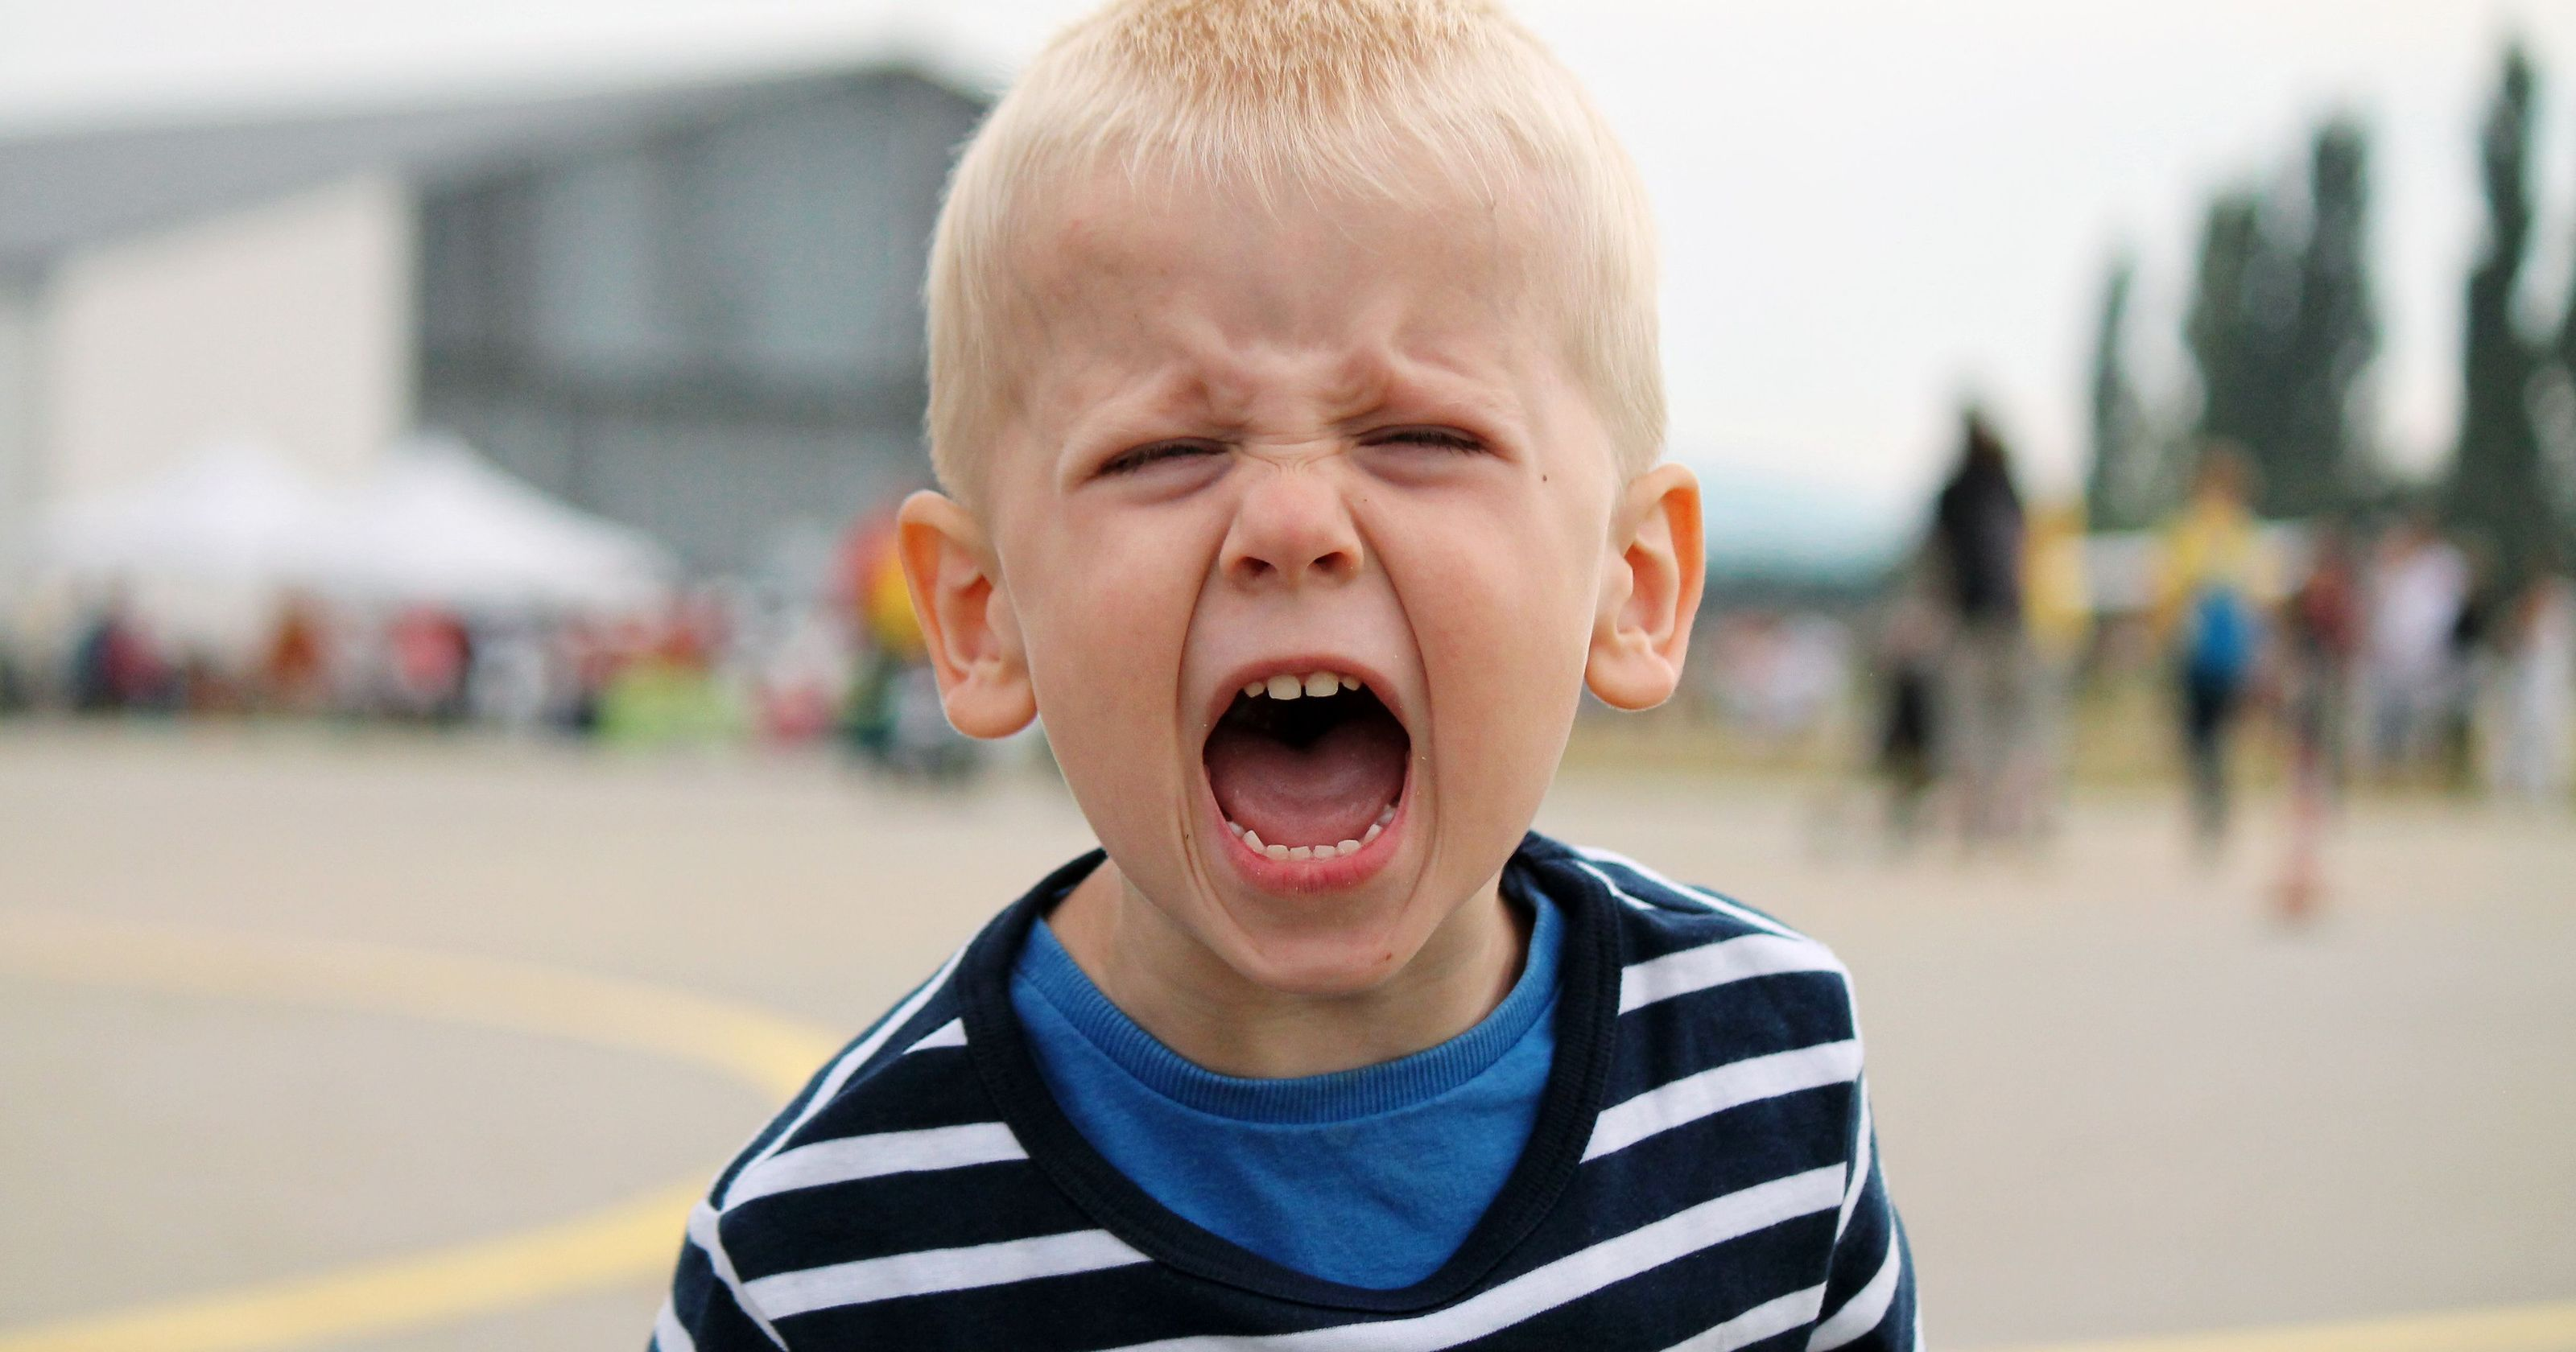 5 anger warnings you must notice in your child